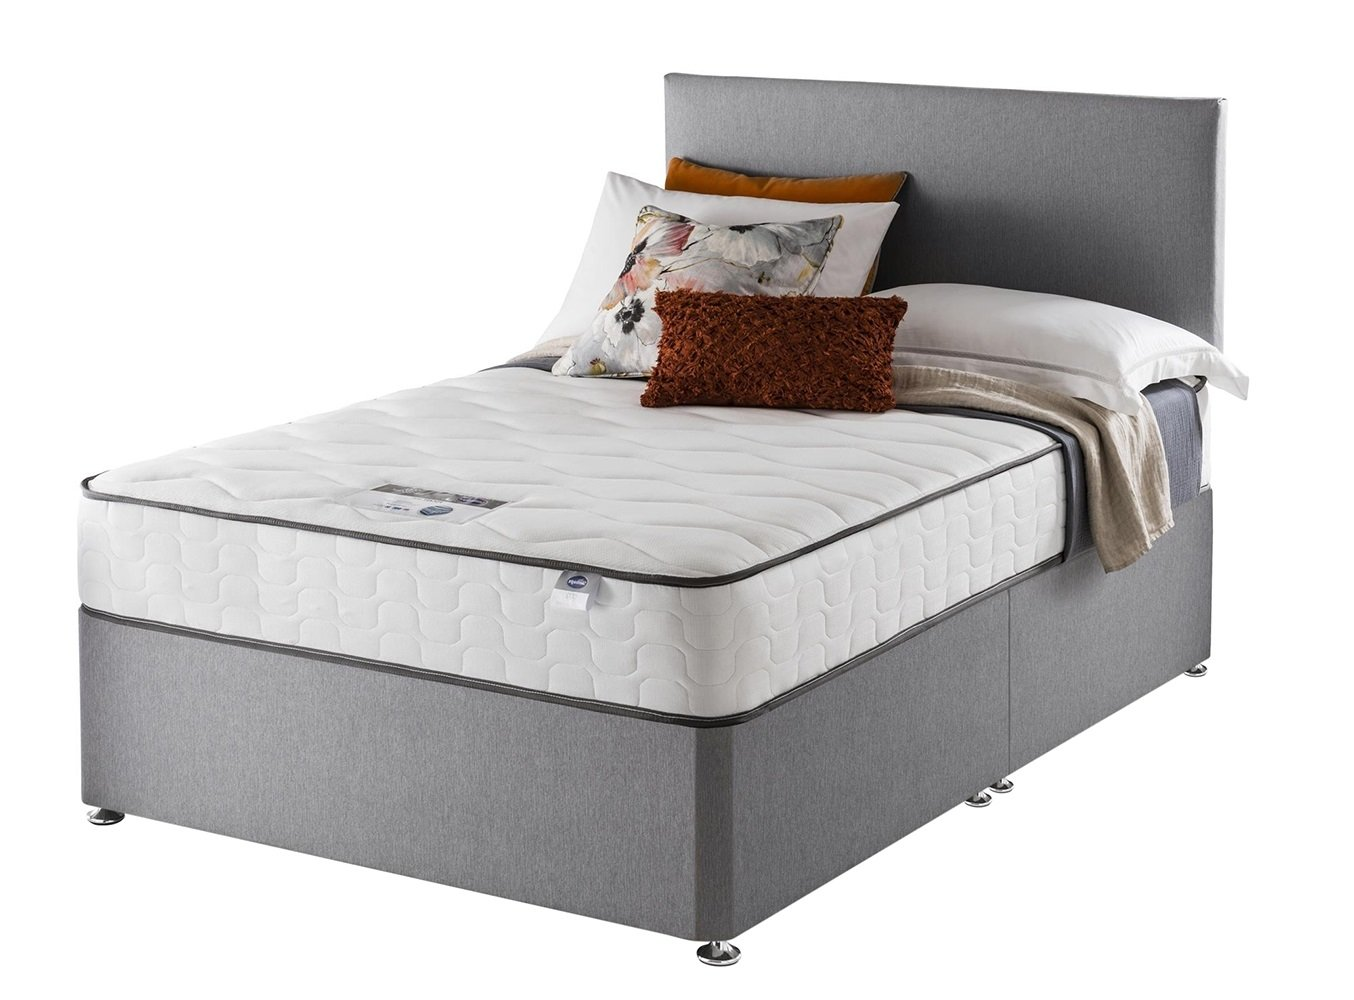 Silentnight - Harding Pocket Comfort - Kingsize - Divan Bed at Argos